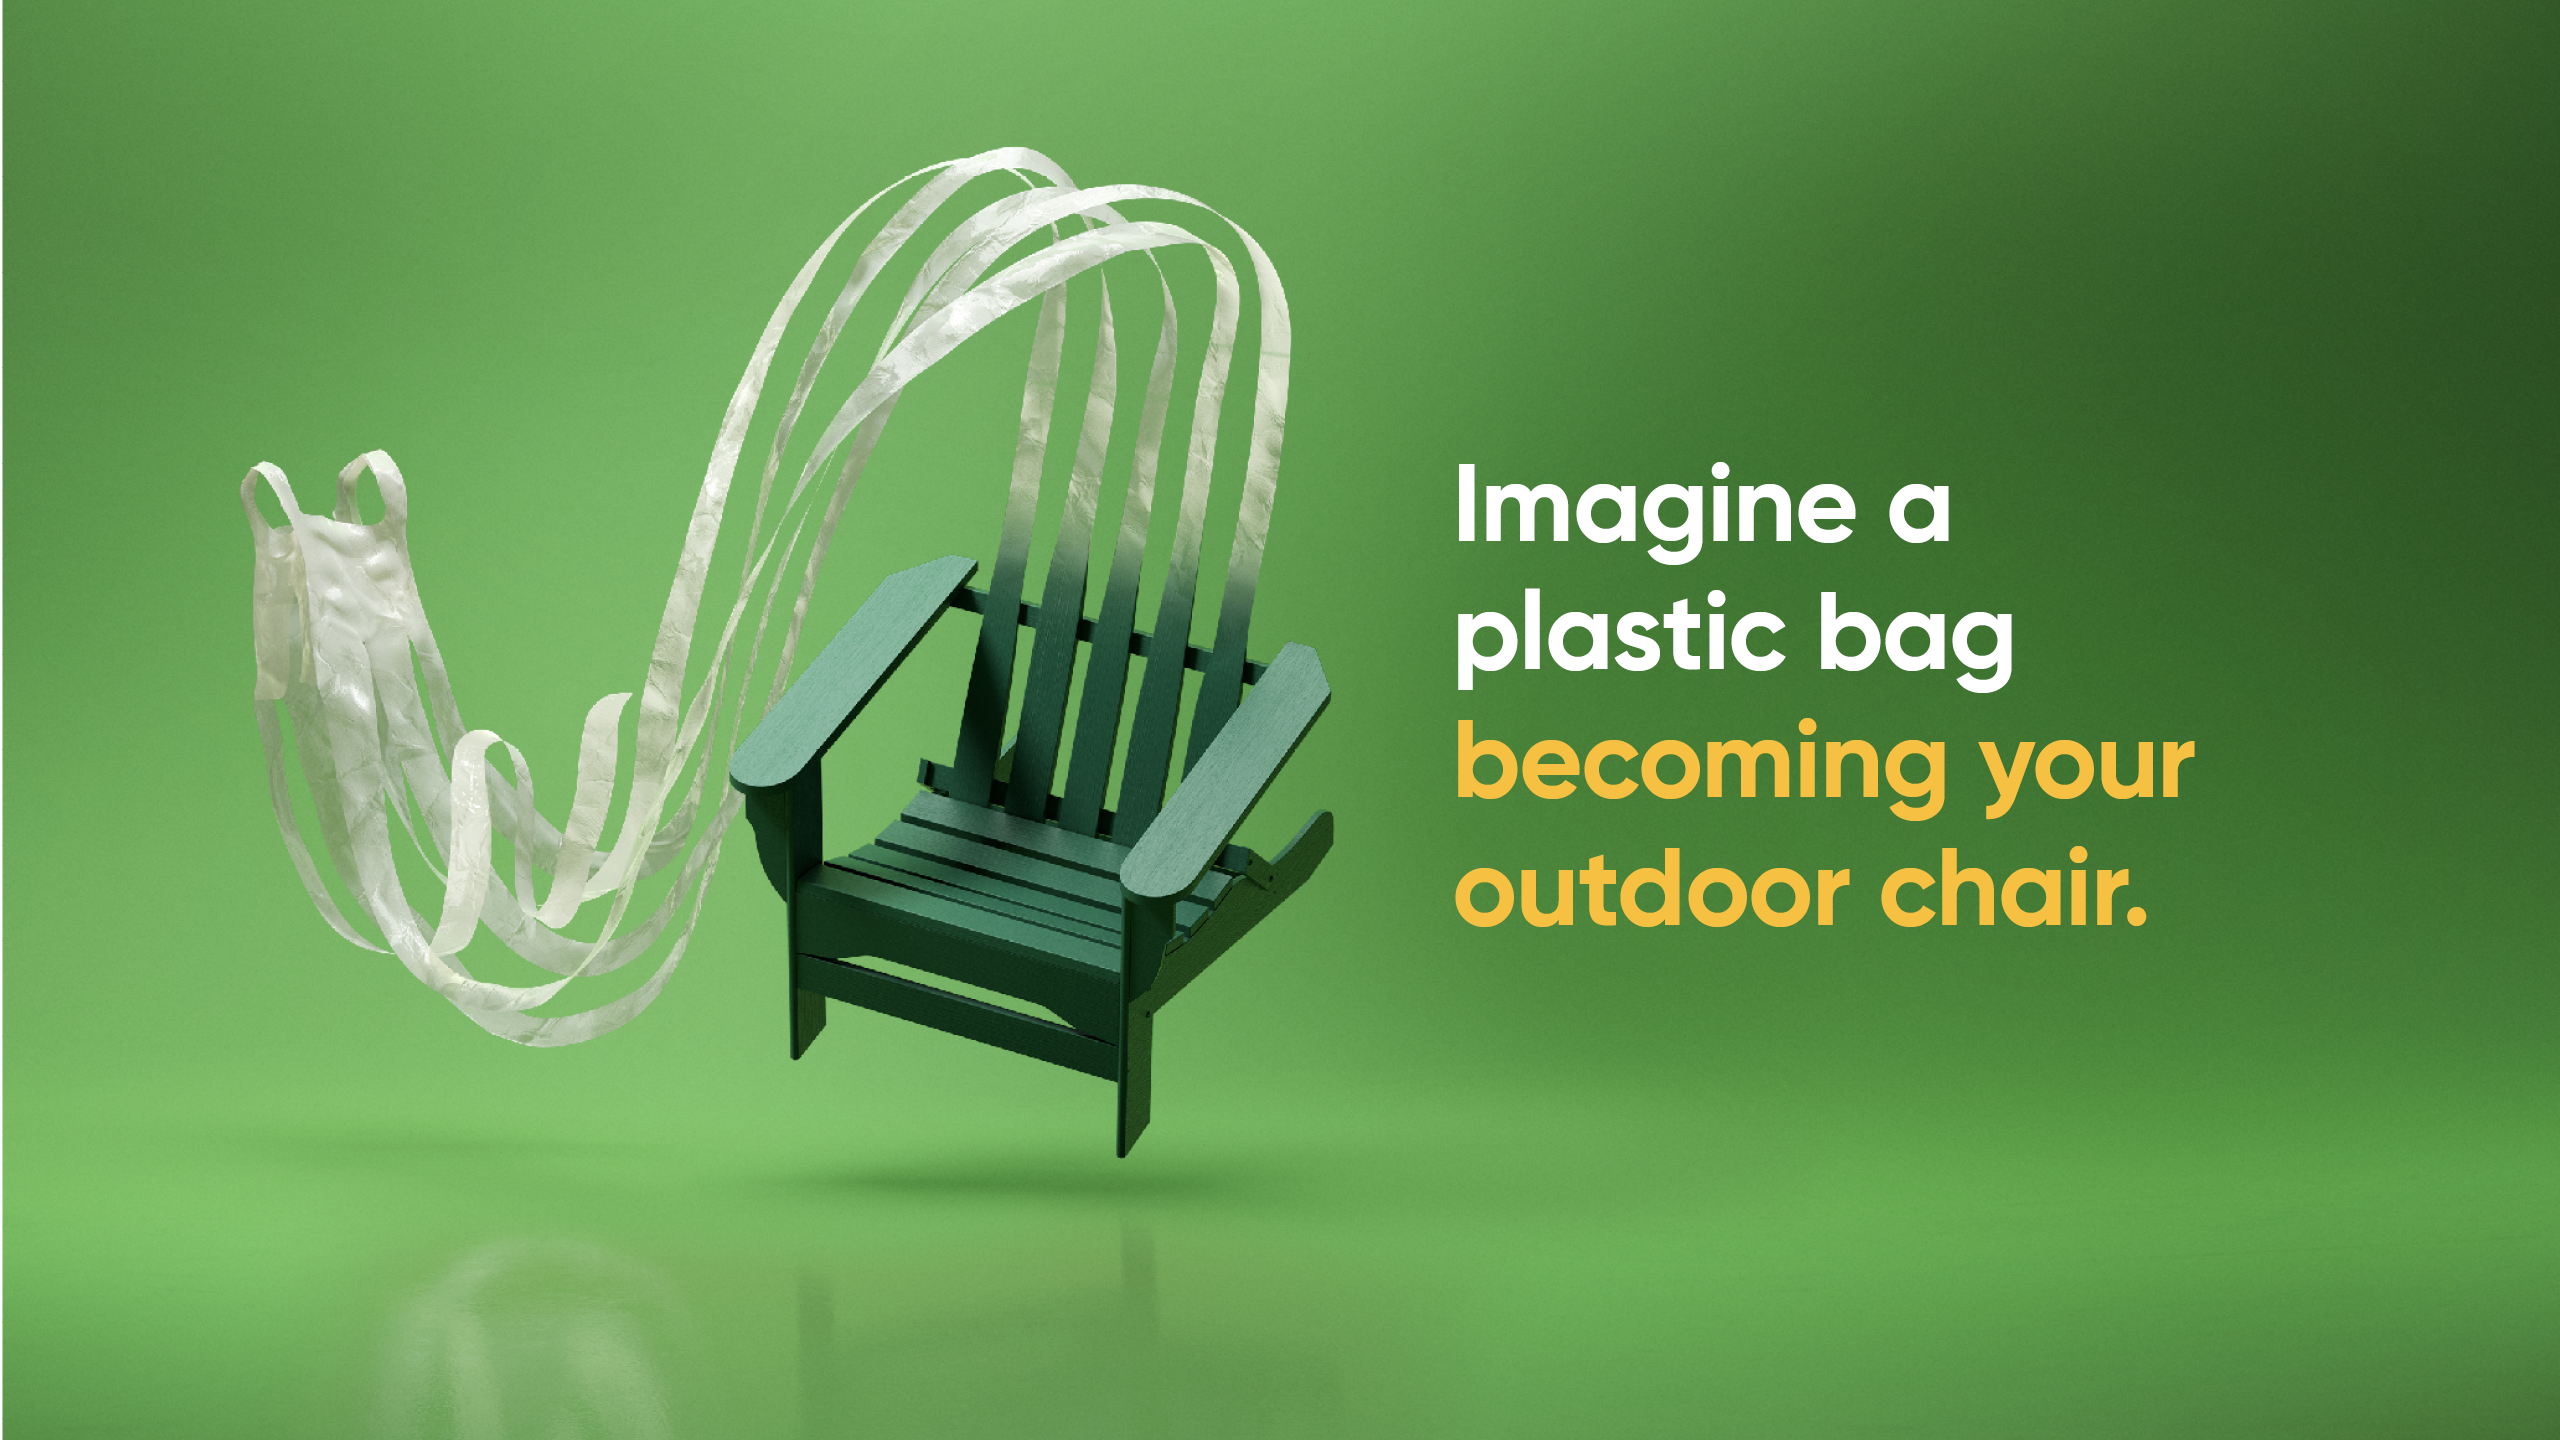 imagine a plastic bag becoming your outdoor chair.